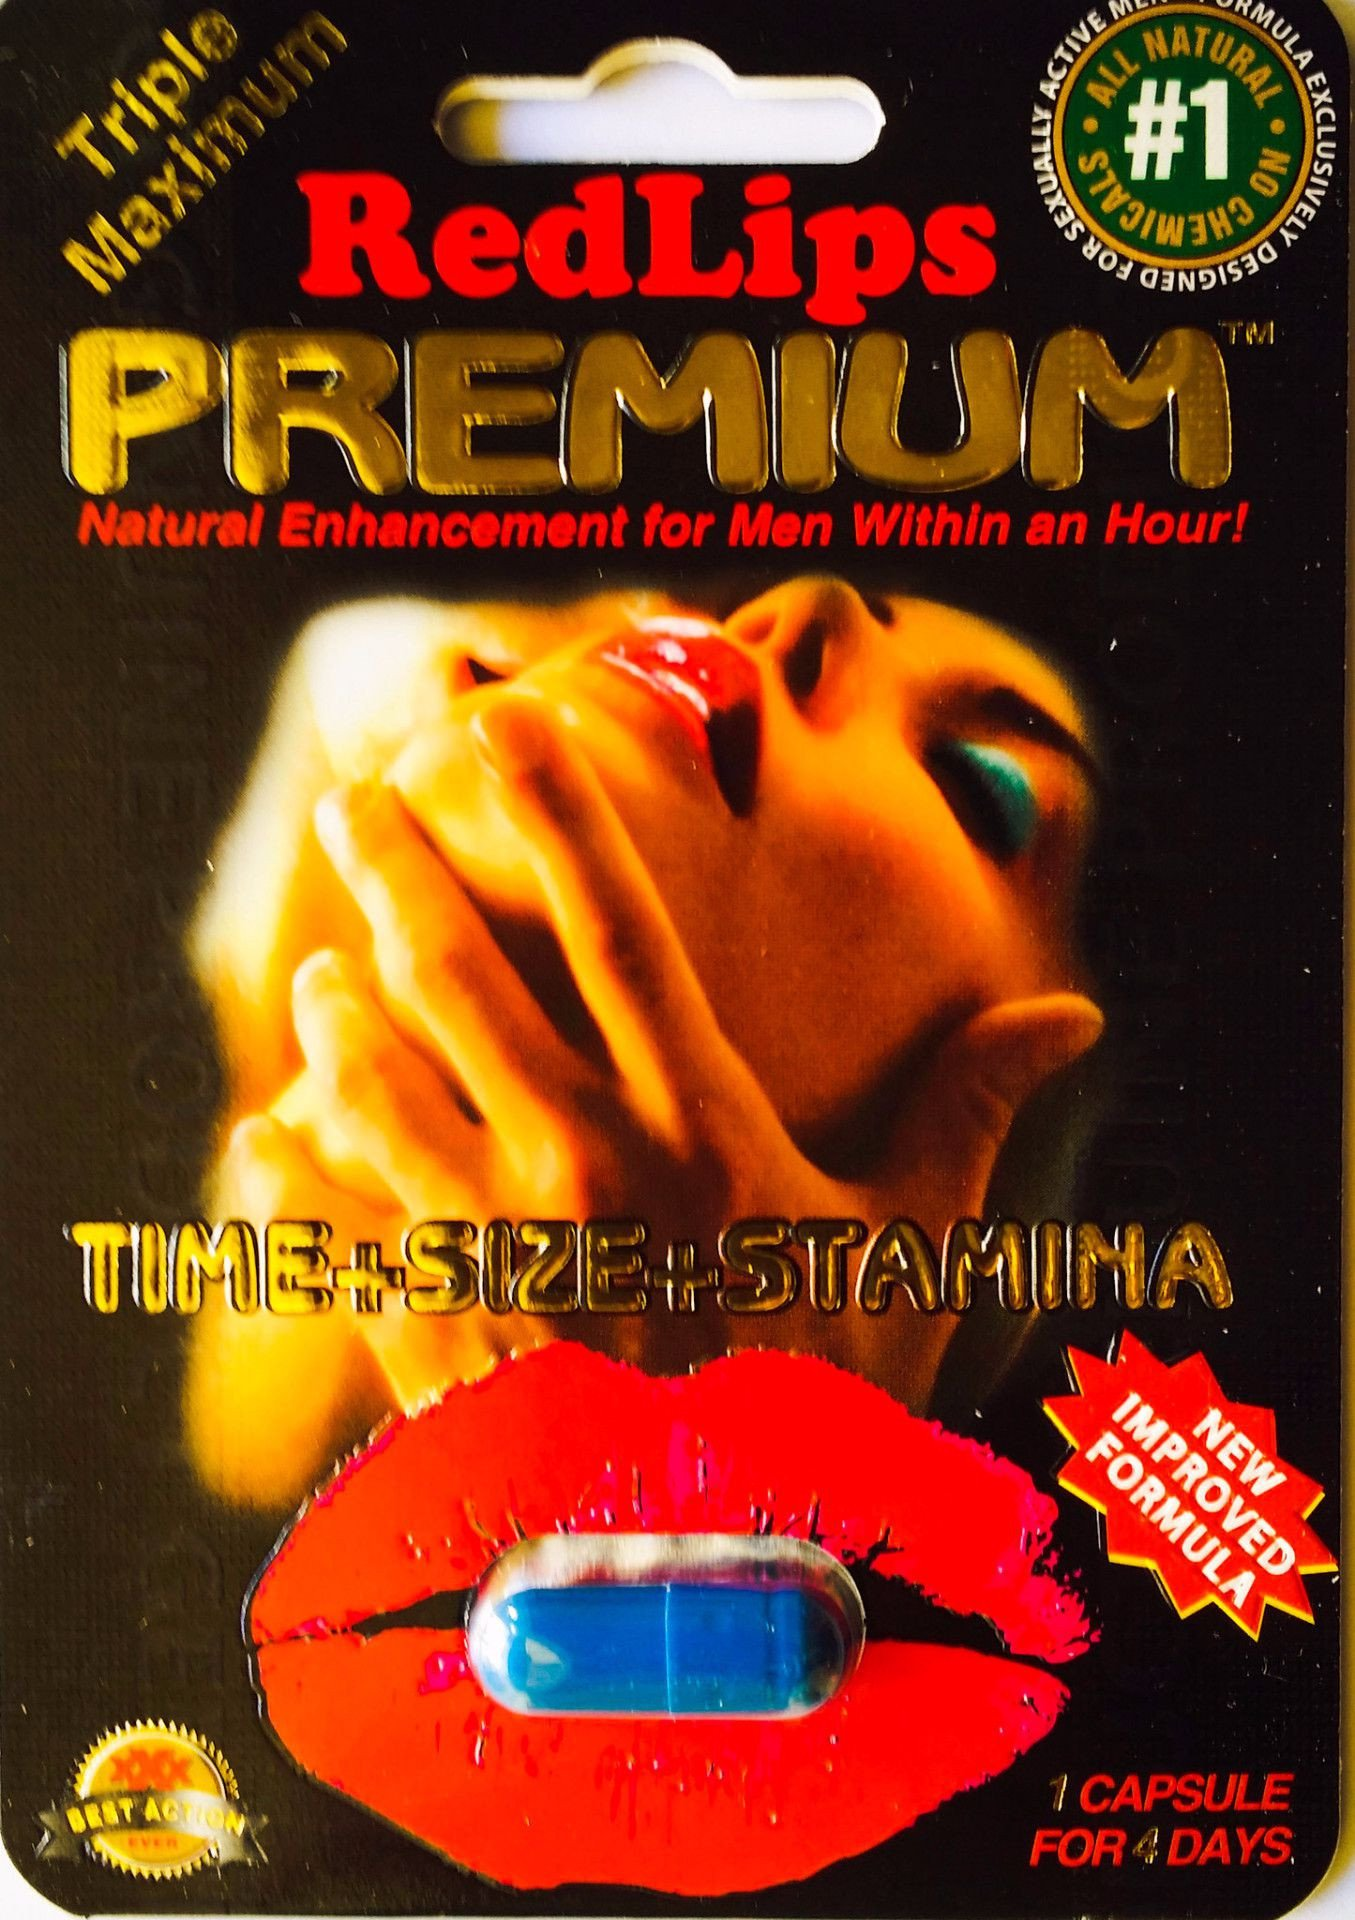 Red Lips Premium 1250mg Triple Maximum Genuine Natural Enahncement for Men 1 Pill